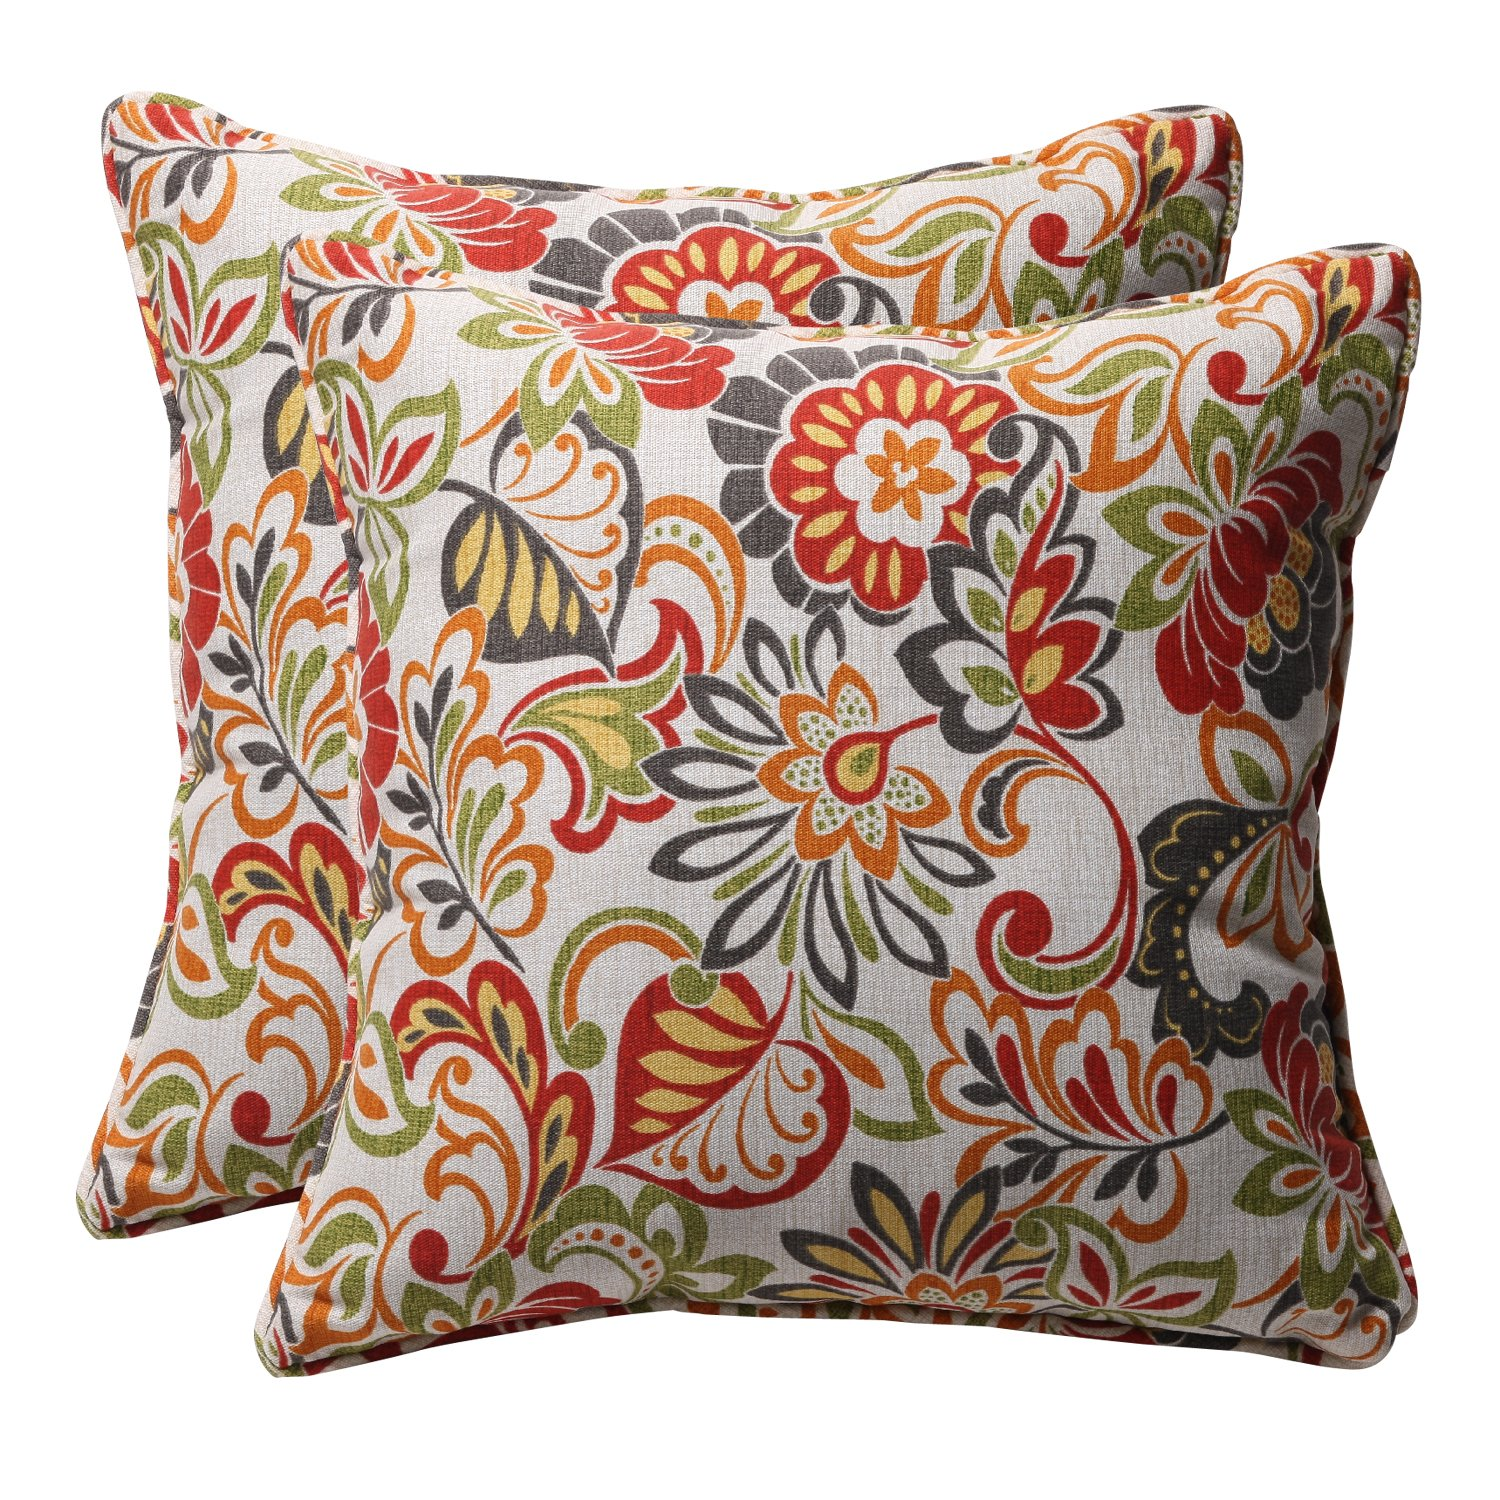 Pillow Perfect Decorative Multicolored Modern Floral Square Toss Pillows, 2-Pack by Pillow Perfect